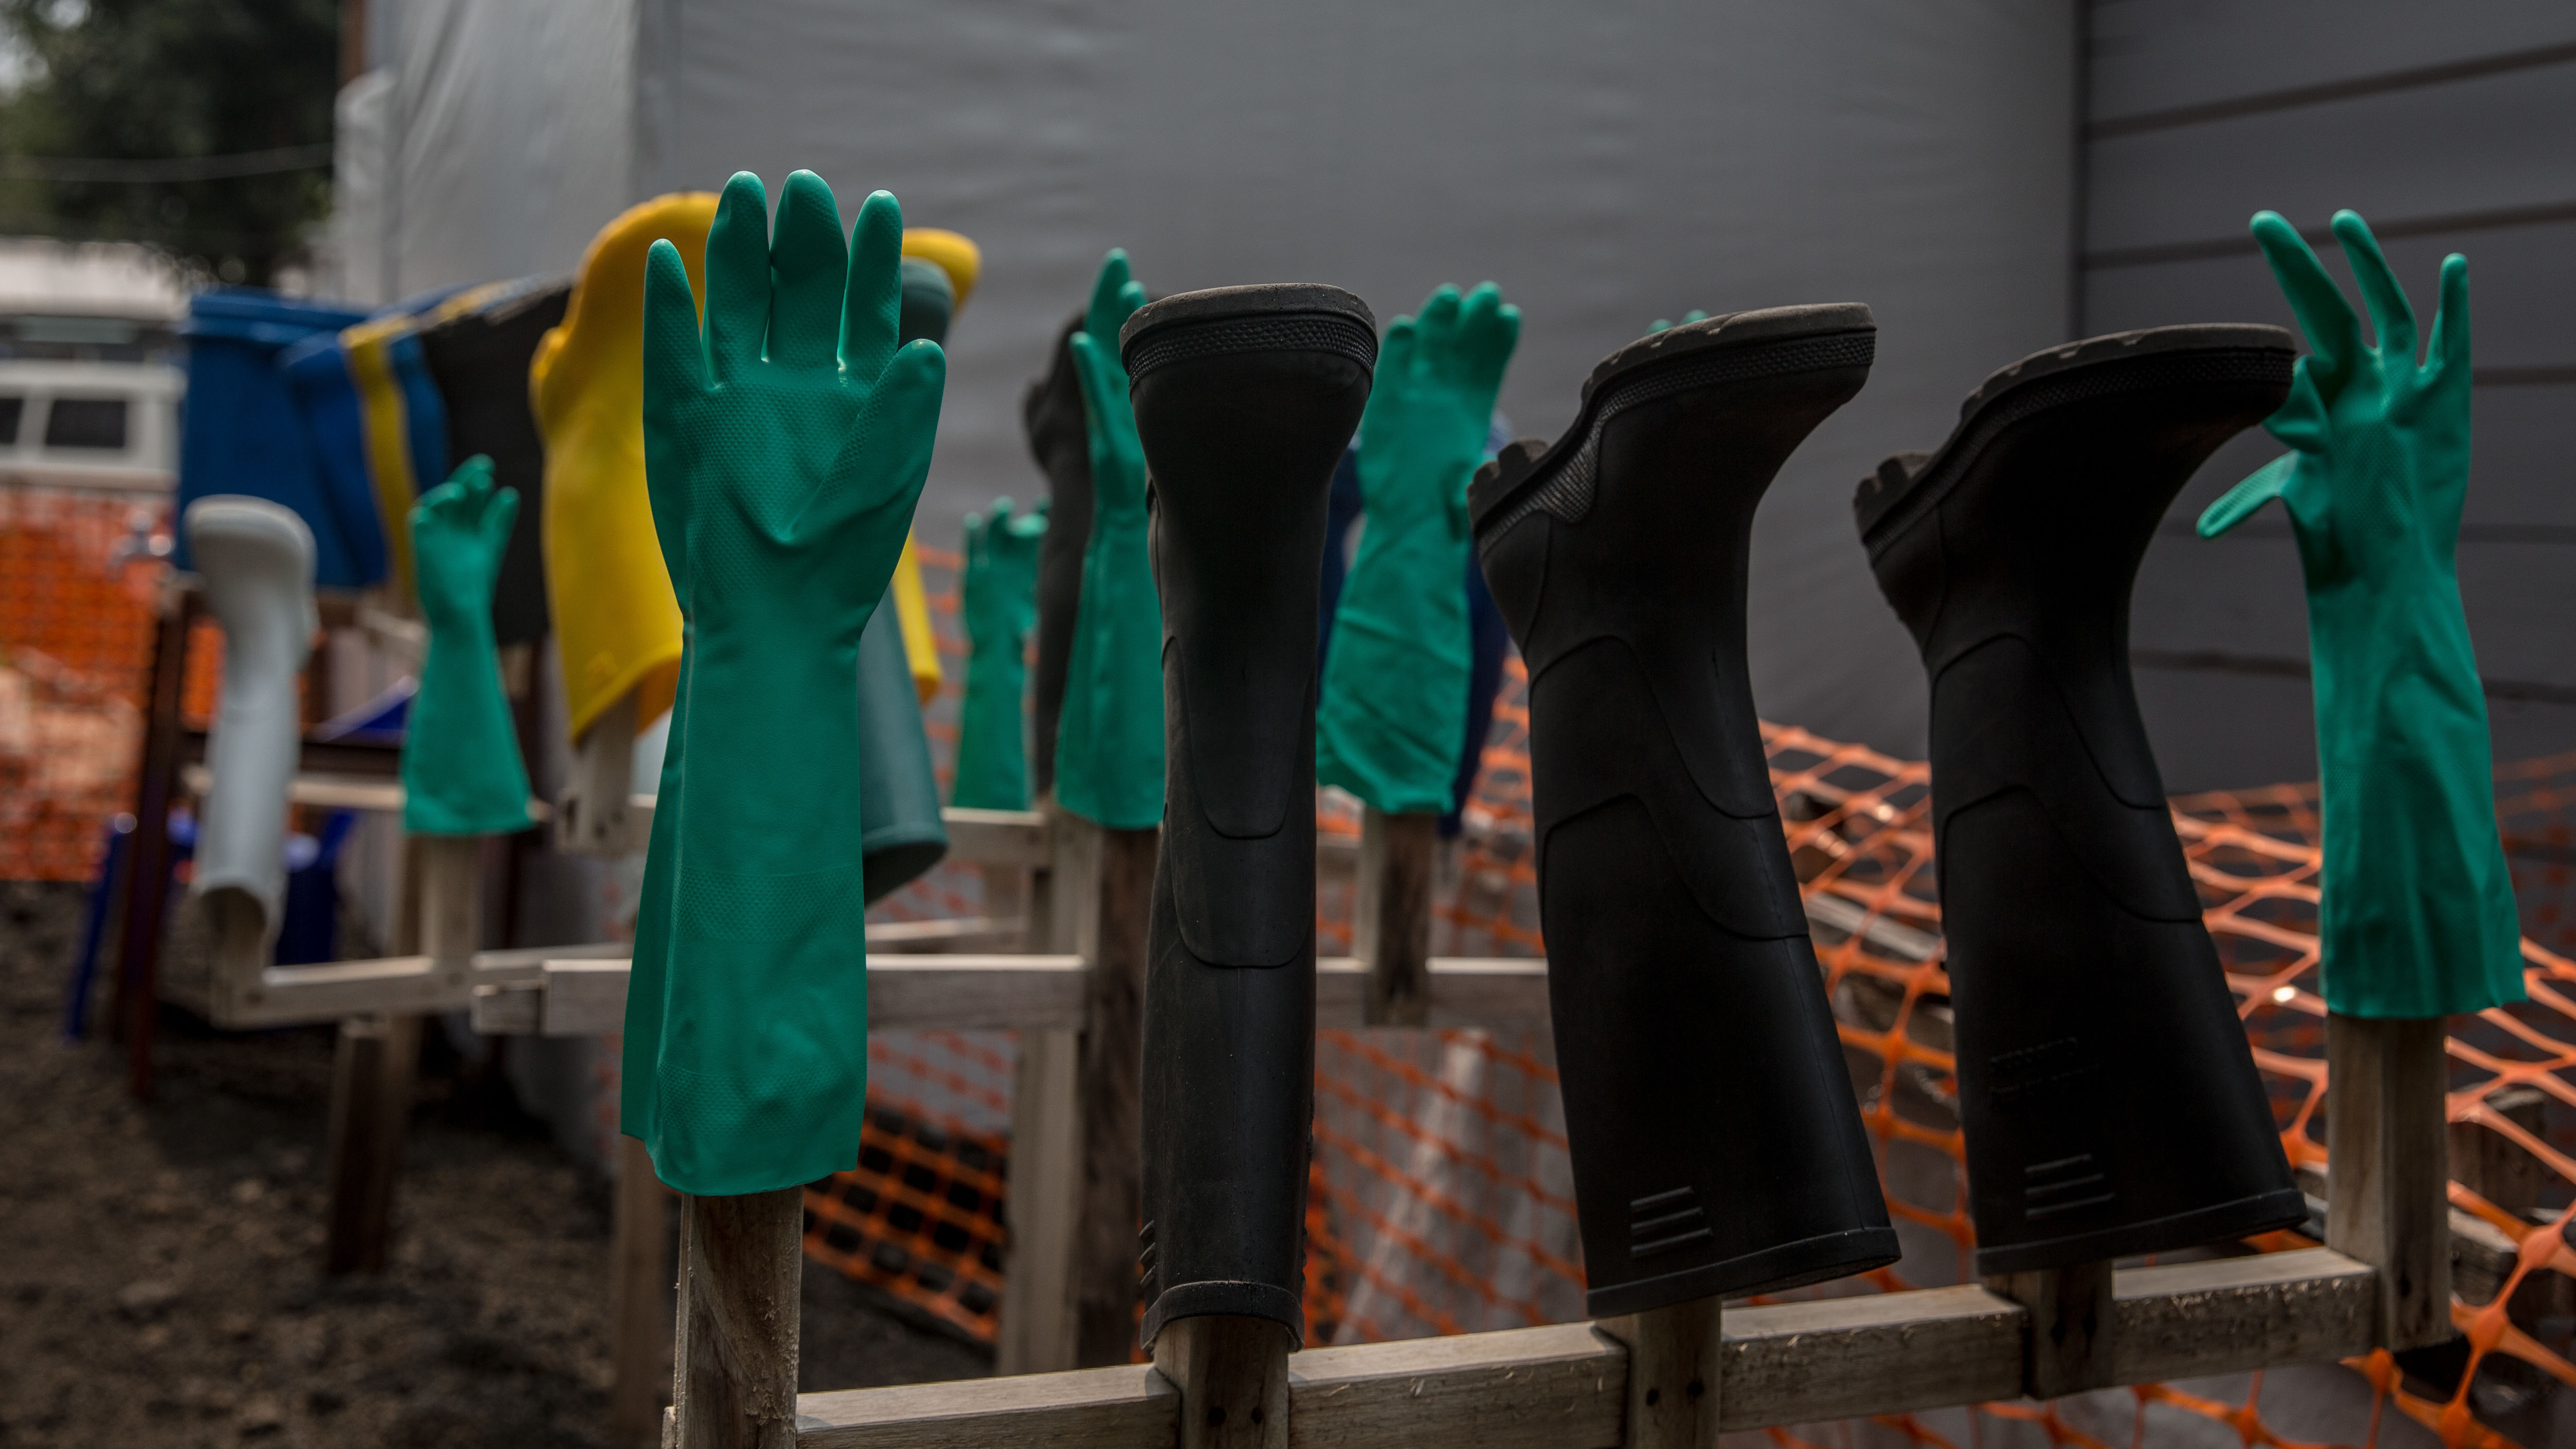 Gloves and boots at an Ebola treatment center in Goma, Democratic Republic of Congo. The DRC is currently experiencing the second worst Ebola outbreak in recorded history. (Photo by Sally Hayden/SOPA Images/LightRocket via Getty Images)